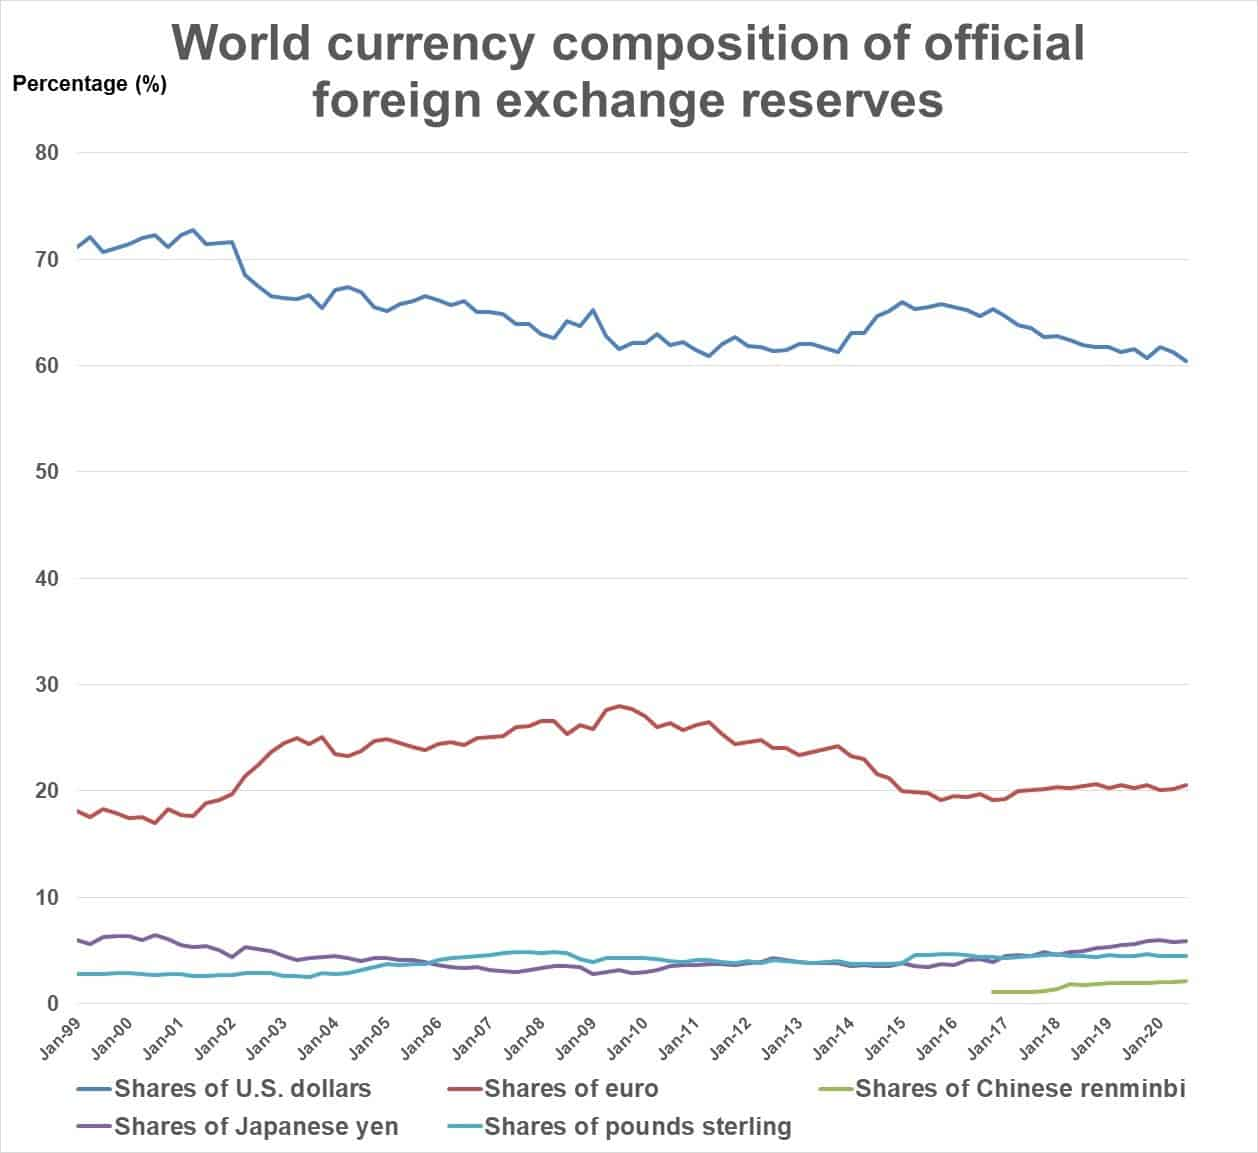 World currency composition of foreign exchange reserves